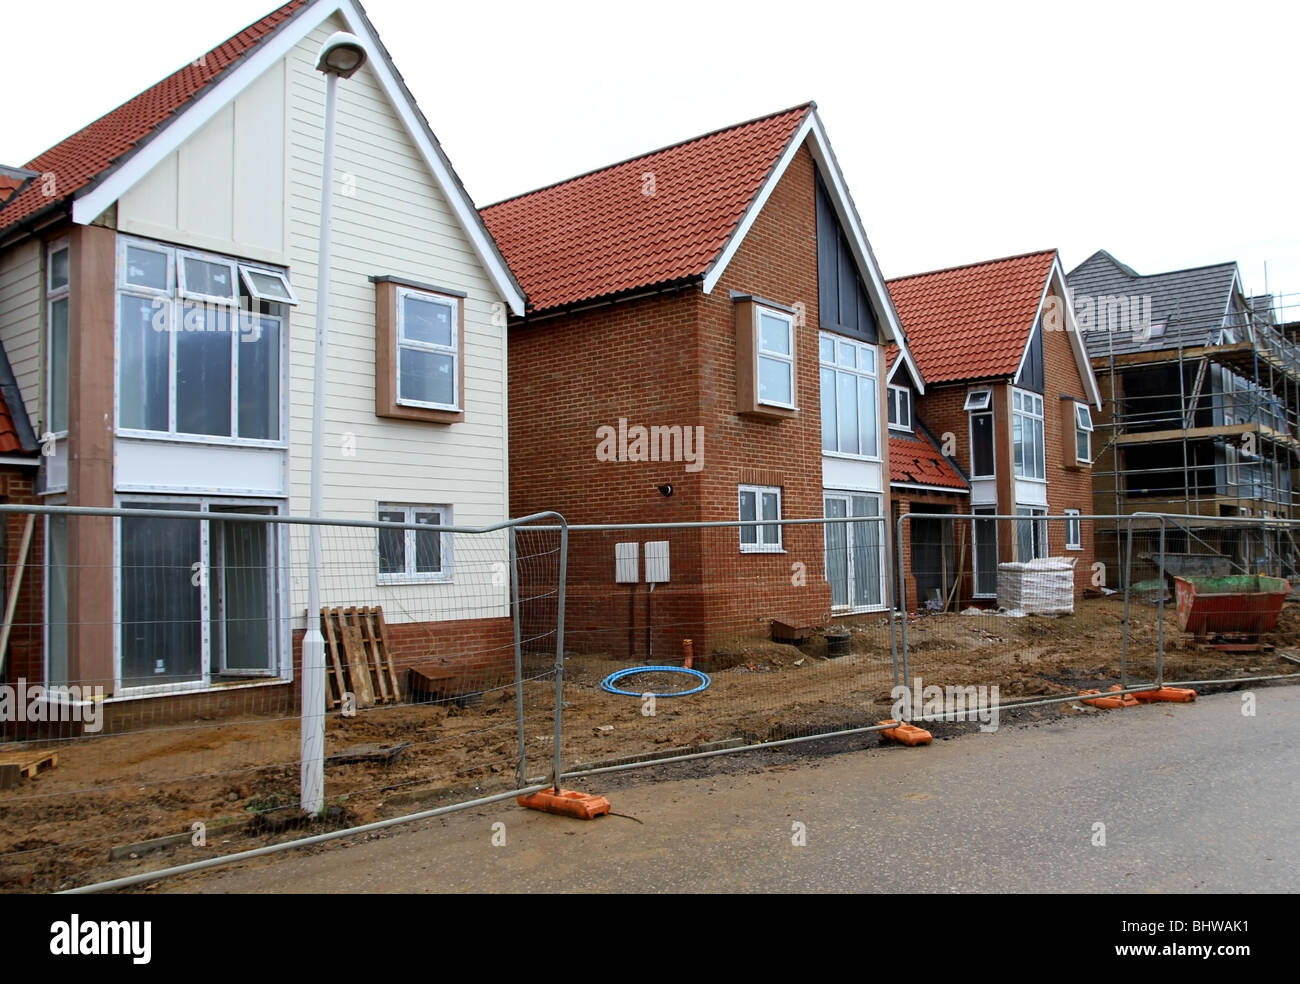 A row of new houses still under construction in the south east of England, UK. - Stock Image